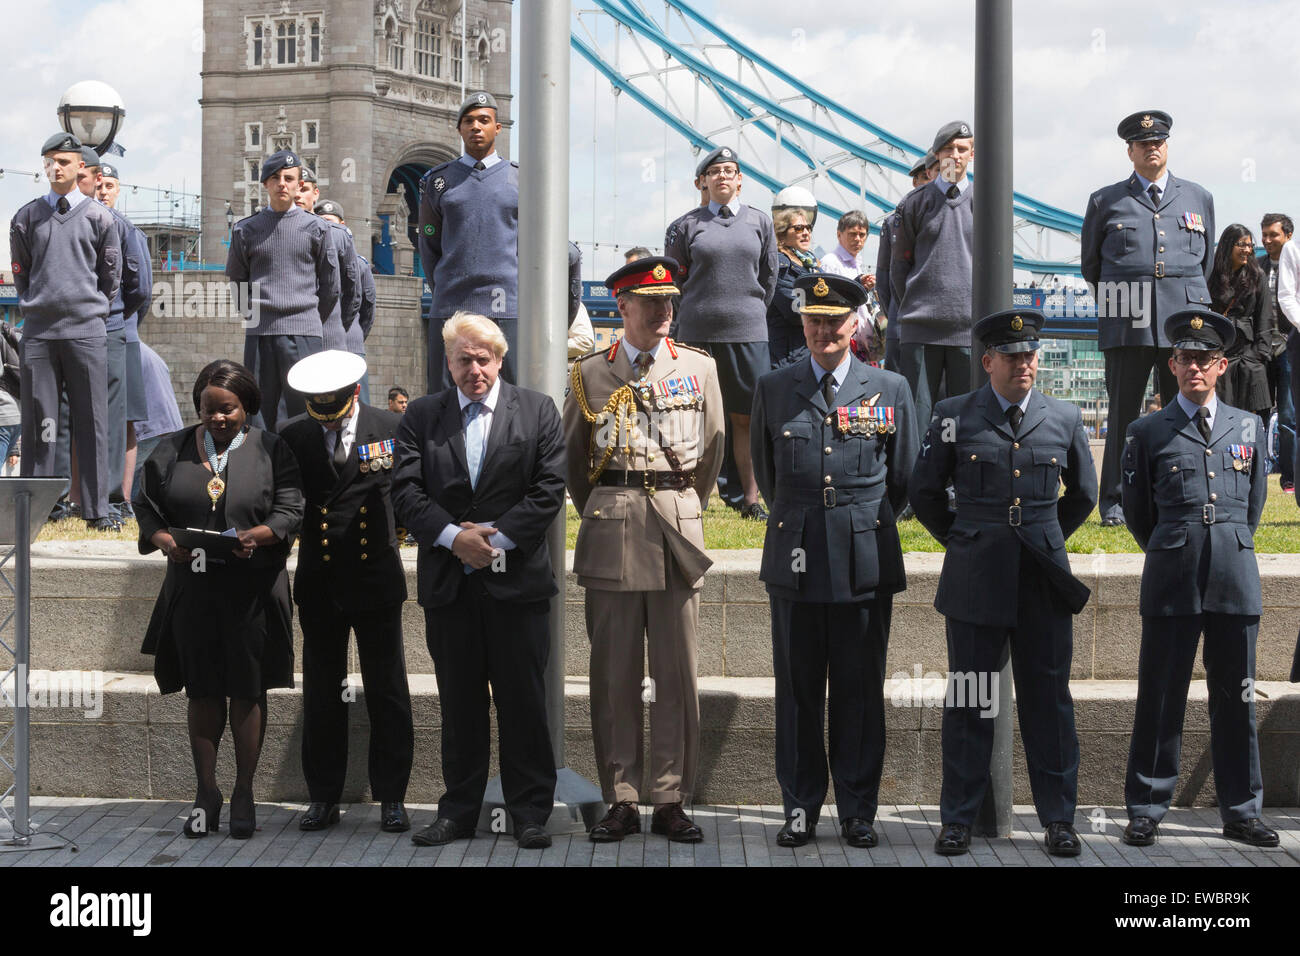 London, UK. 22 June 2015. Pictured: Boris Johnson with Jennette Arnold, Chair of the London Assembly and senior - Stock Image